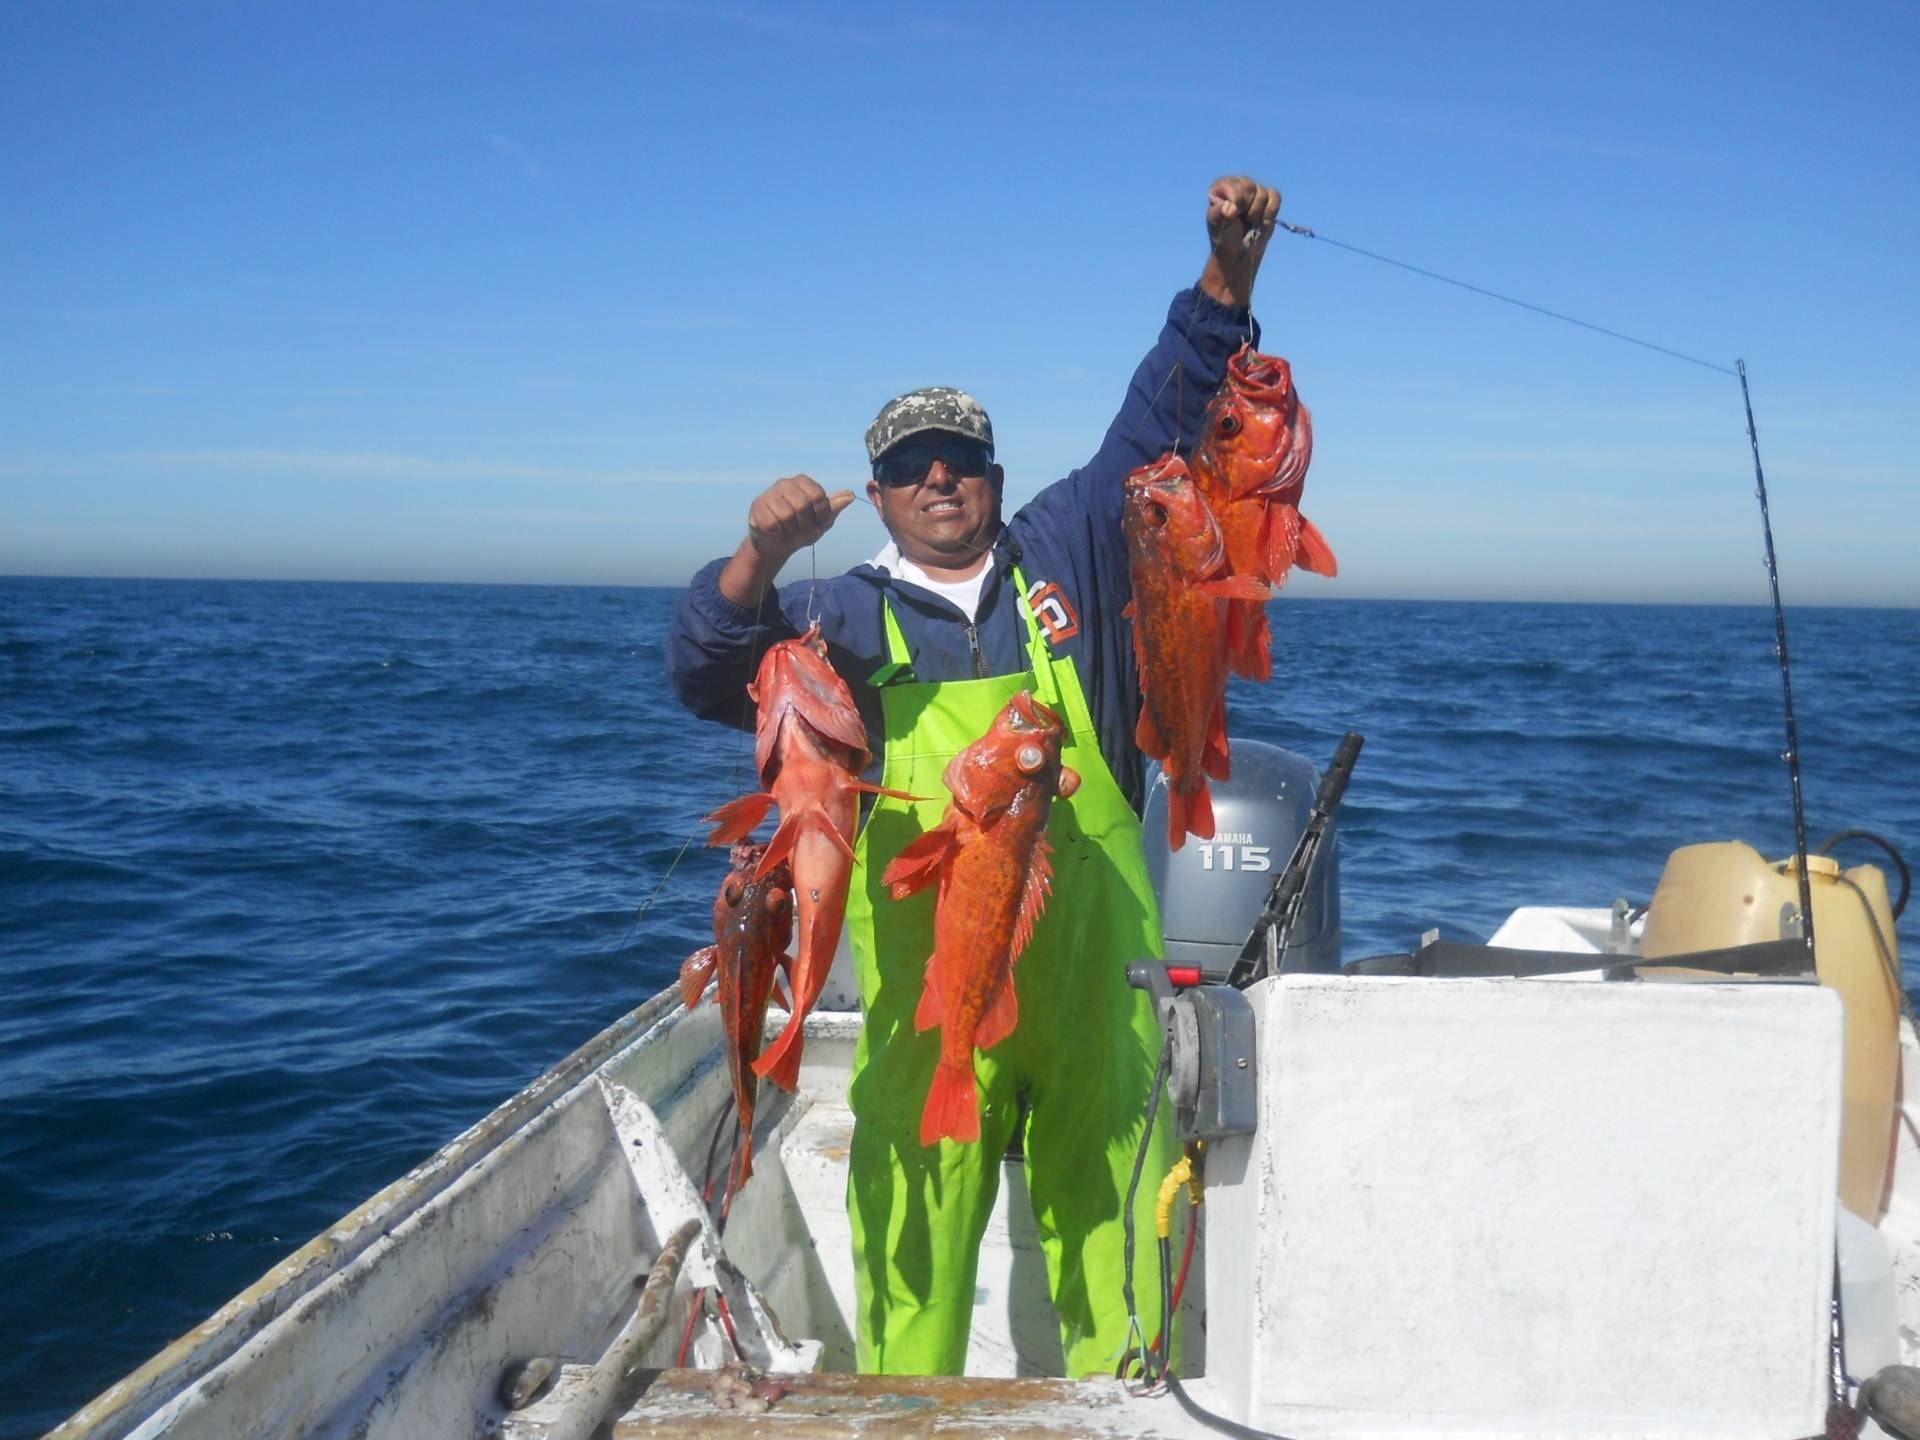 Popotla rosarito bloodydecks for Seal beach fishing